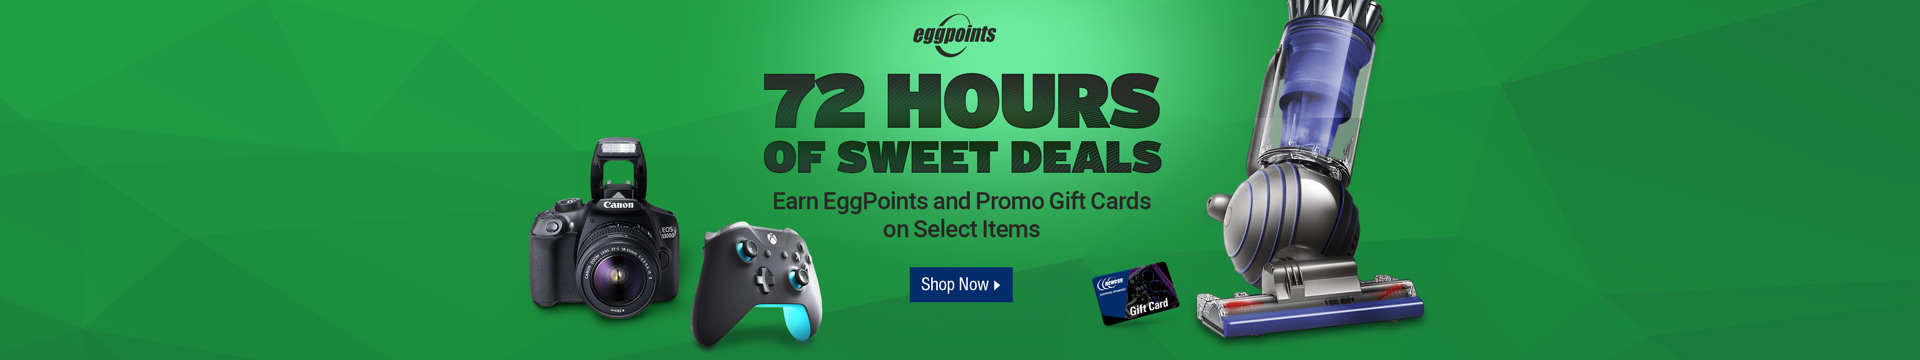 72 Hours of Sweet Deals-EggPoints and Promo Gift Cards